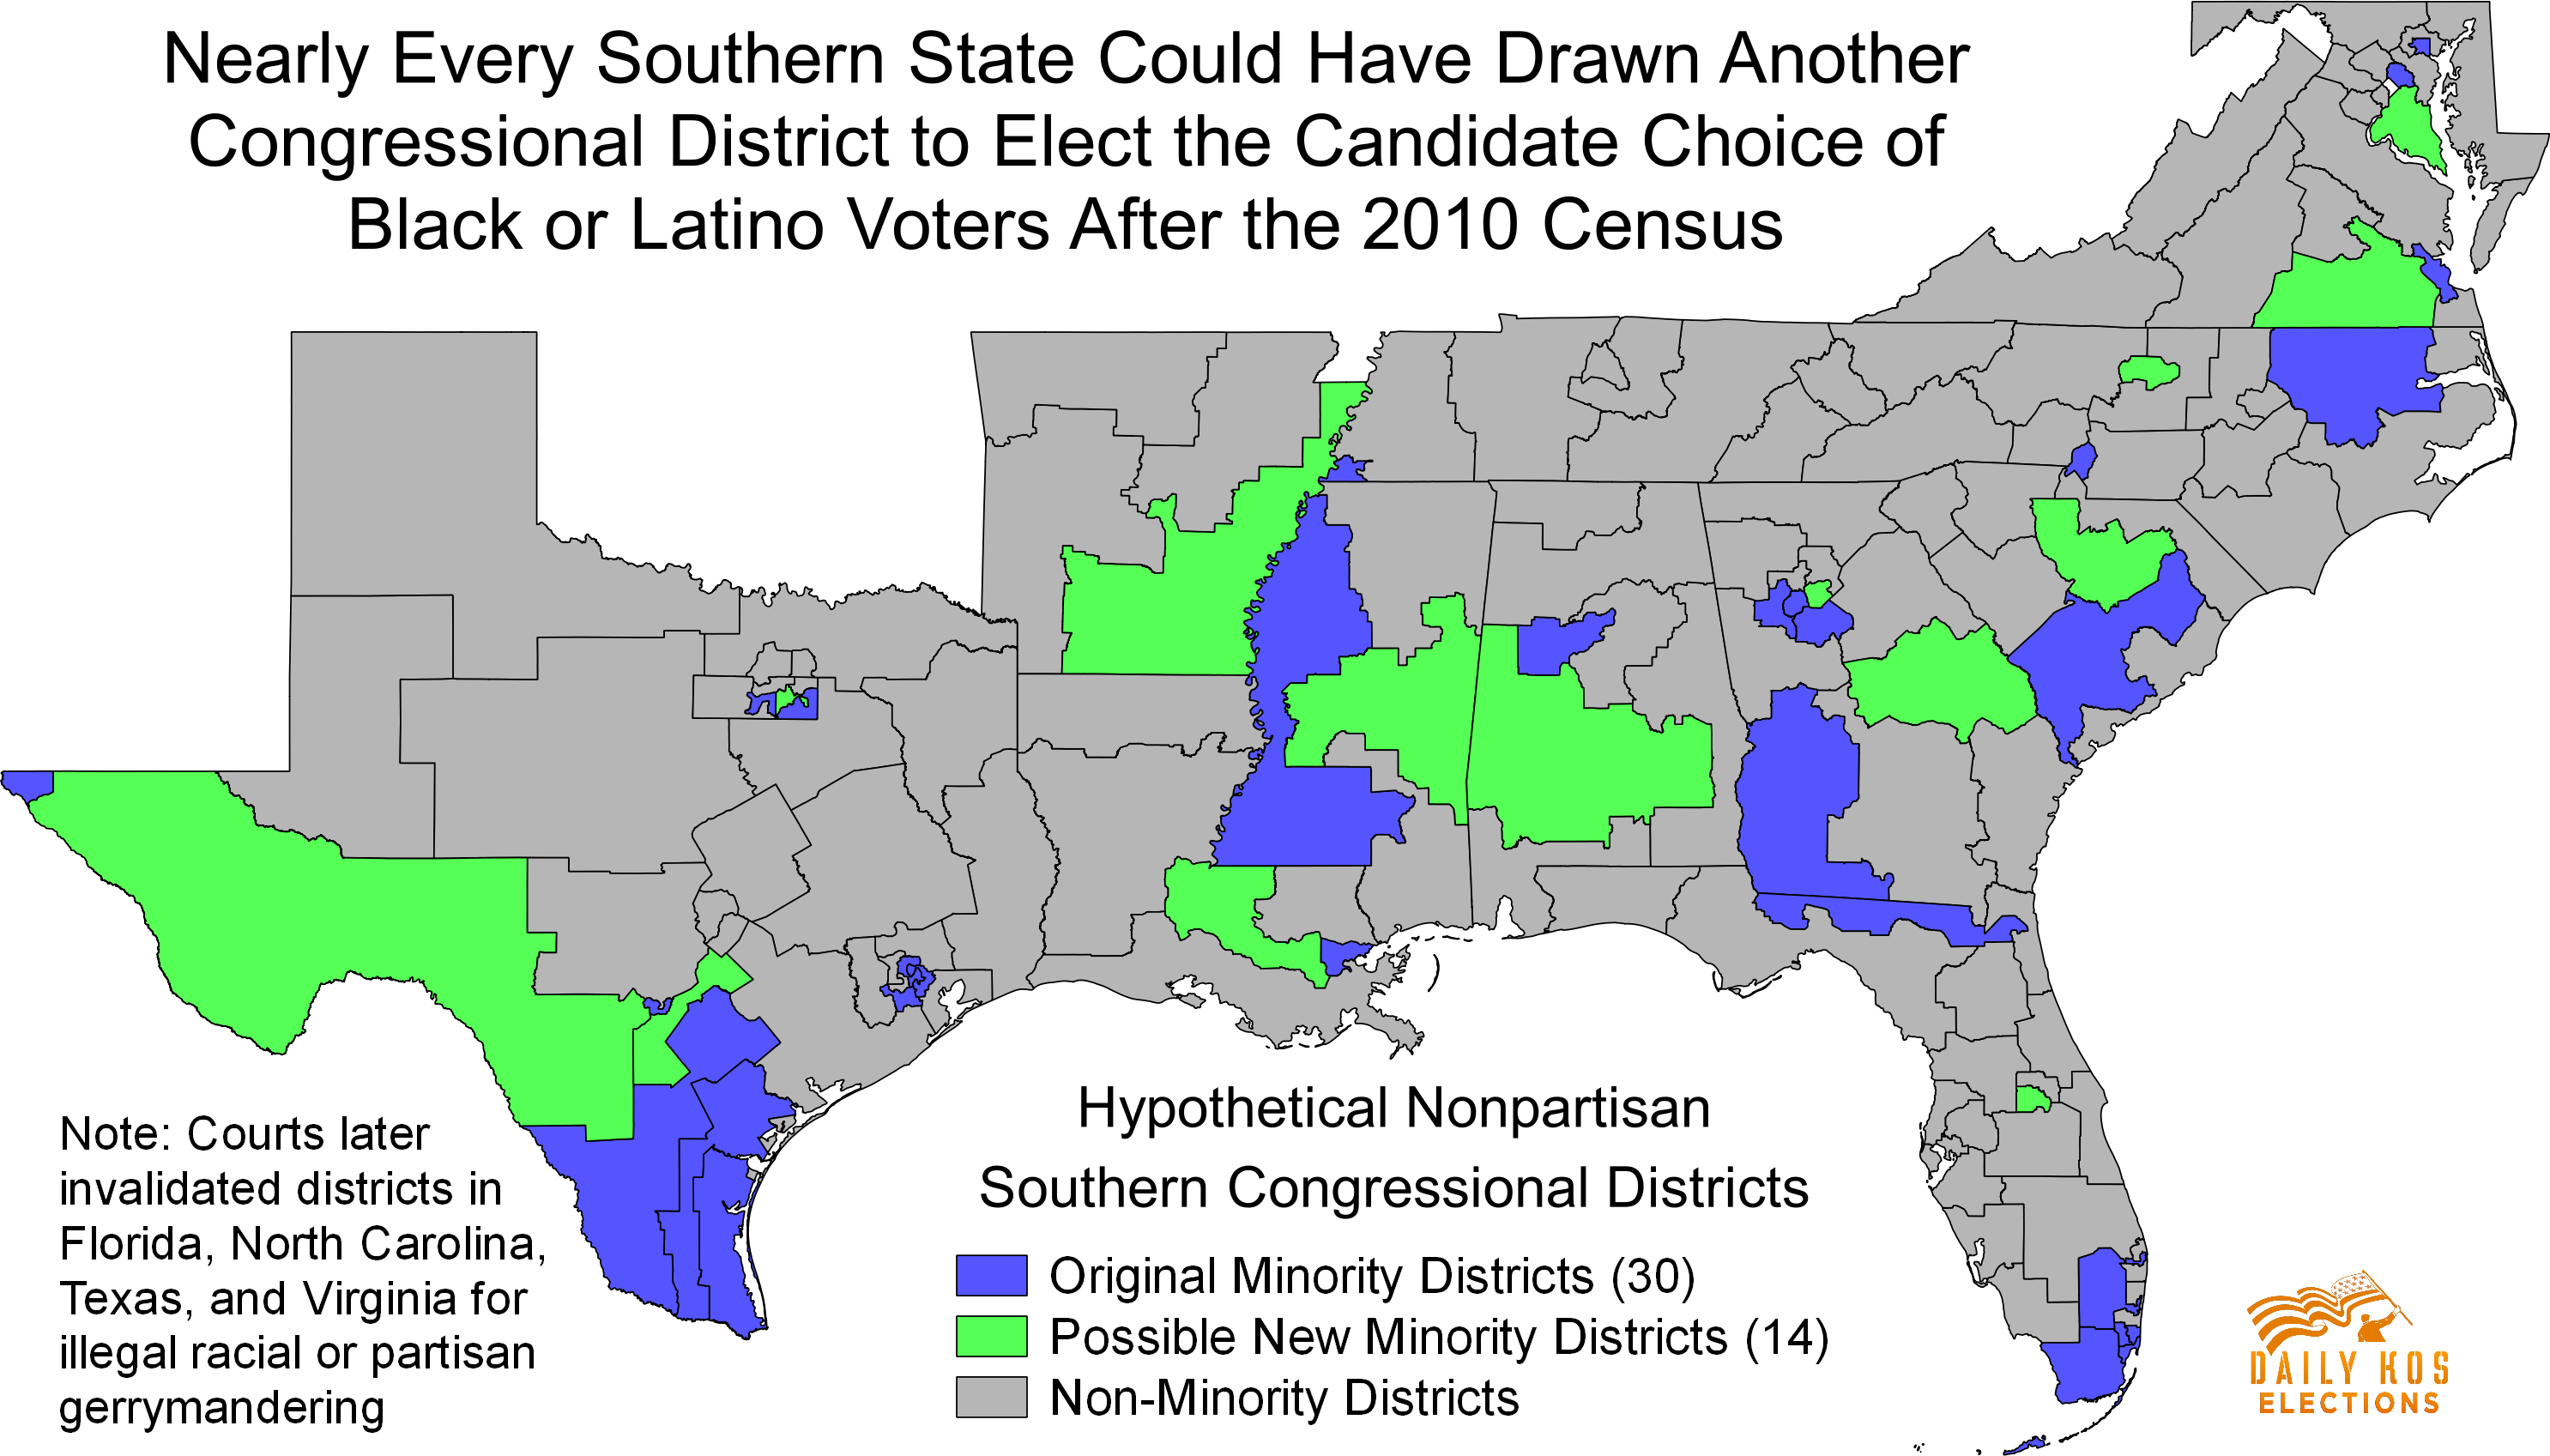 Nearly every Southern state could have drawn another ...